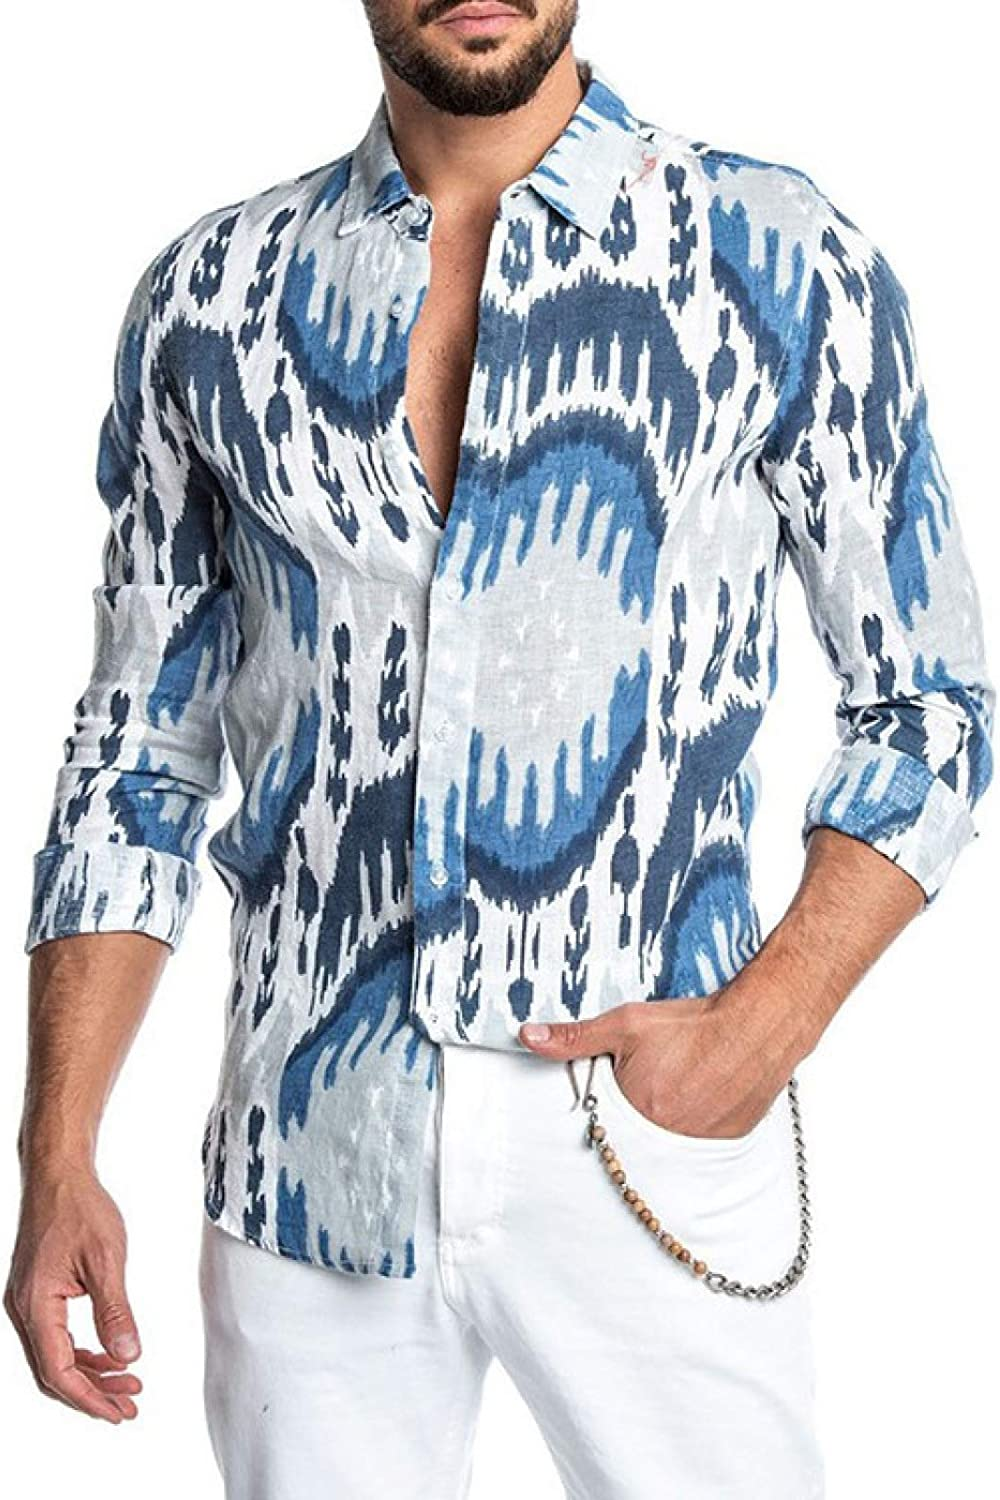 Zestion Men's Shirts Max 83% OFF Gentleman Printing Personality Max 72% OFF Lapel Long-S